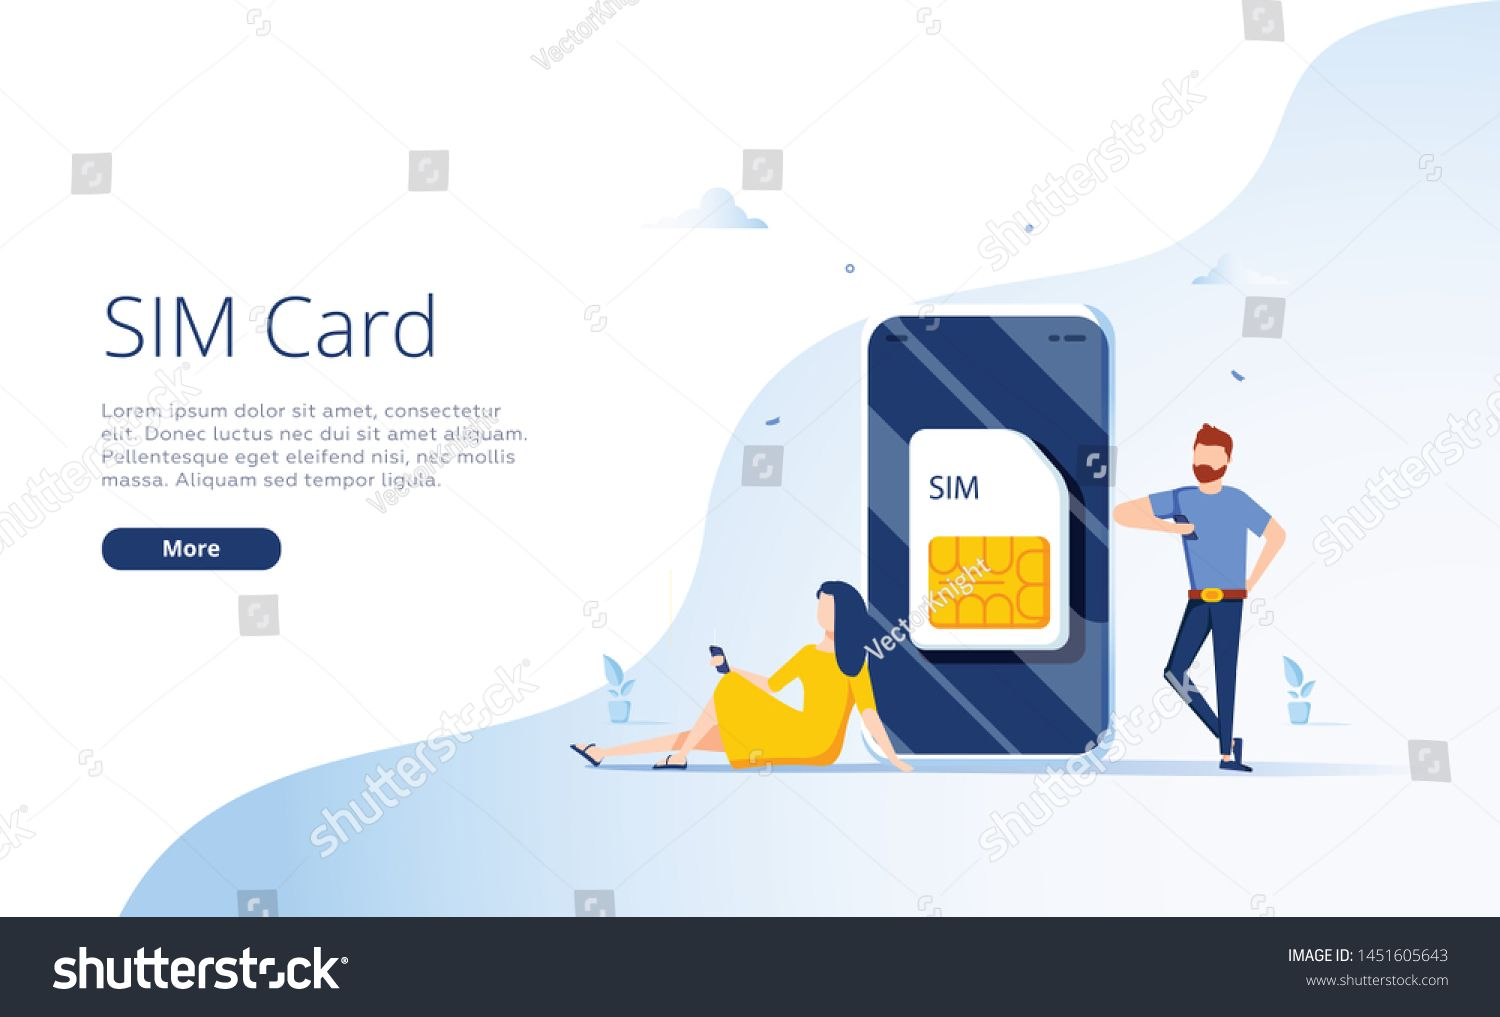 Sim Card Concept In Illustration Mobile Network With Esim